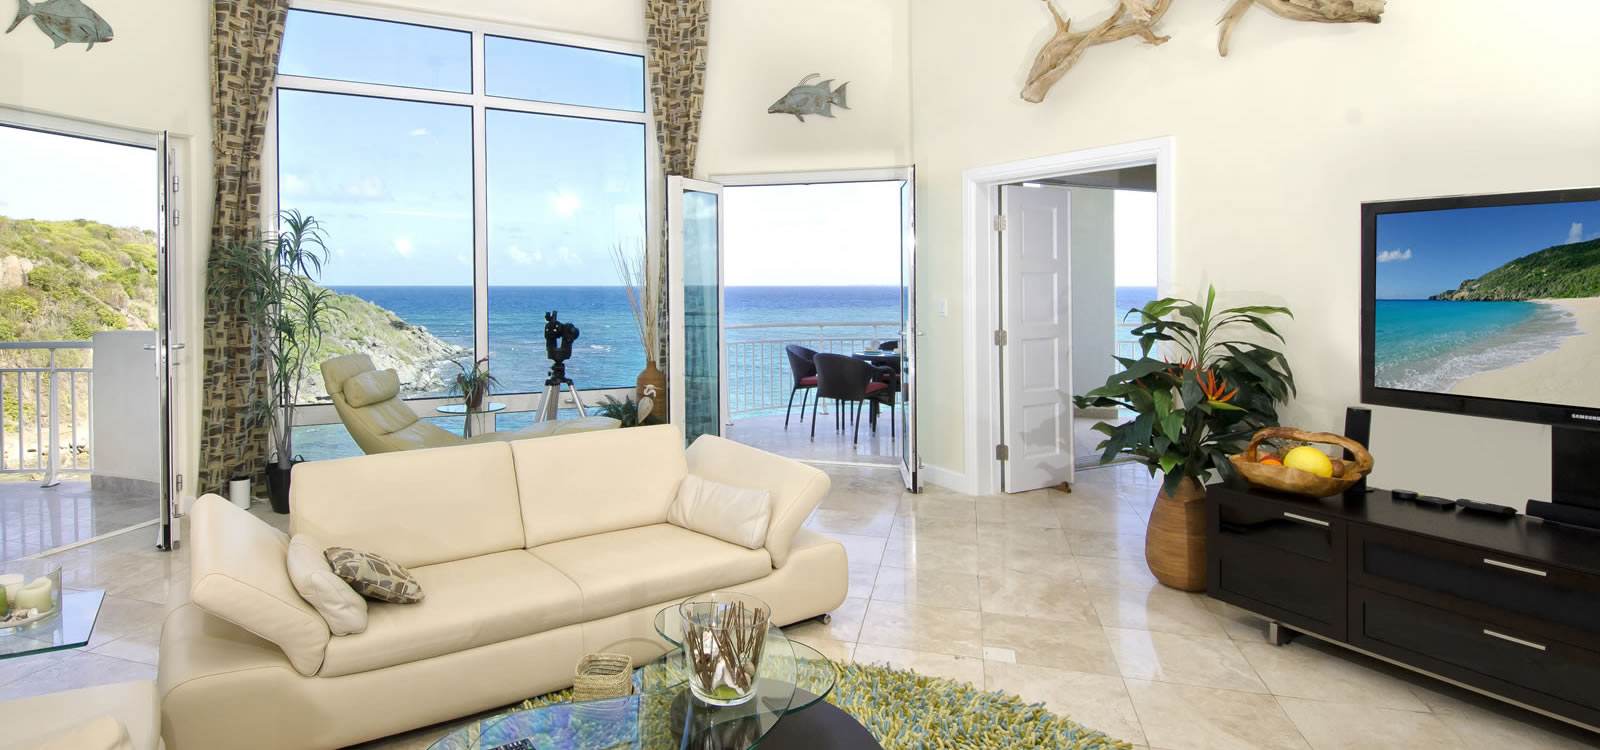 Penthouse Apartment For Sale Oyster Pond St Maarten 5 7th Heaven Properties